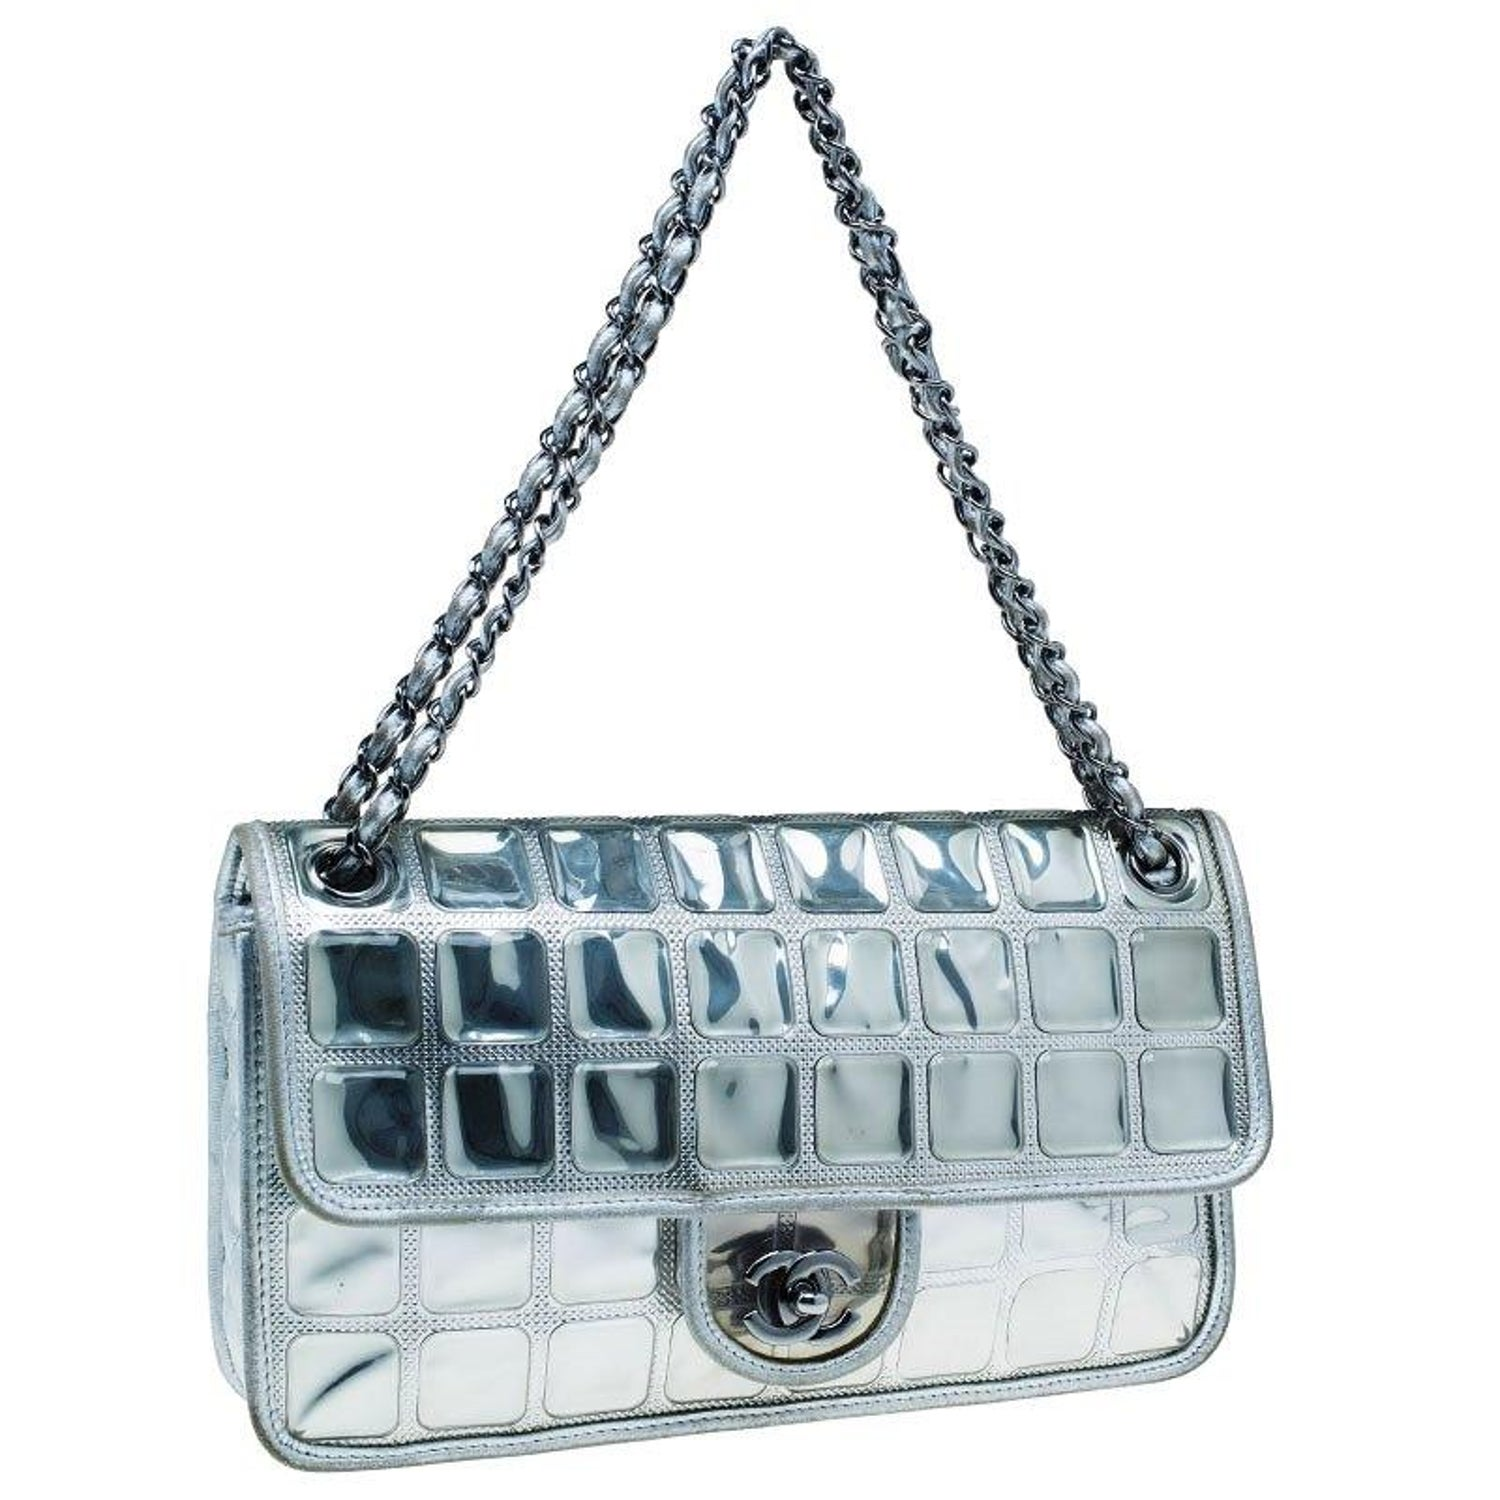 10c5ee591200 Chanel Silver Leather Ice Cube Limited Edition Flap Bag For Sale at 1stdibs